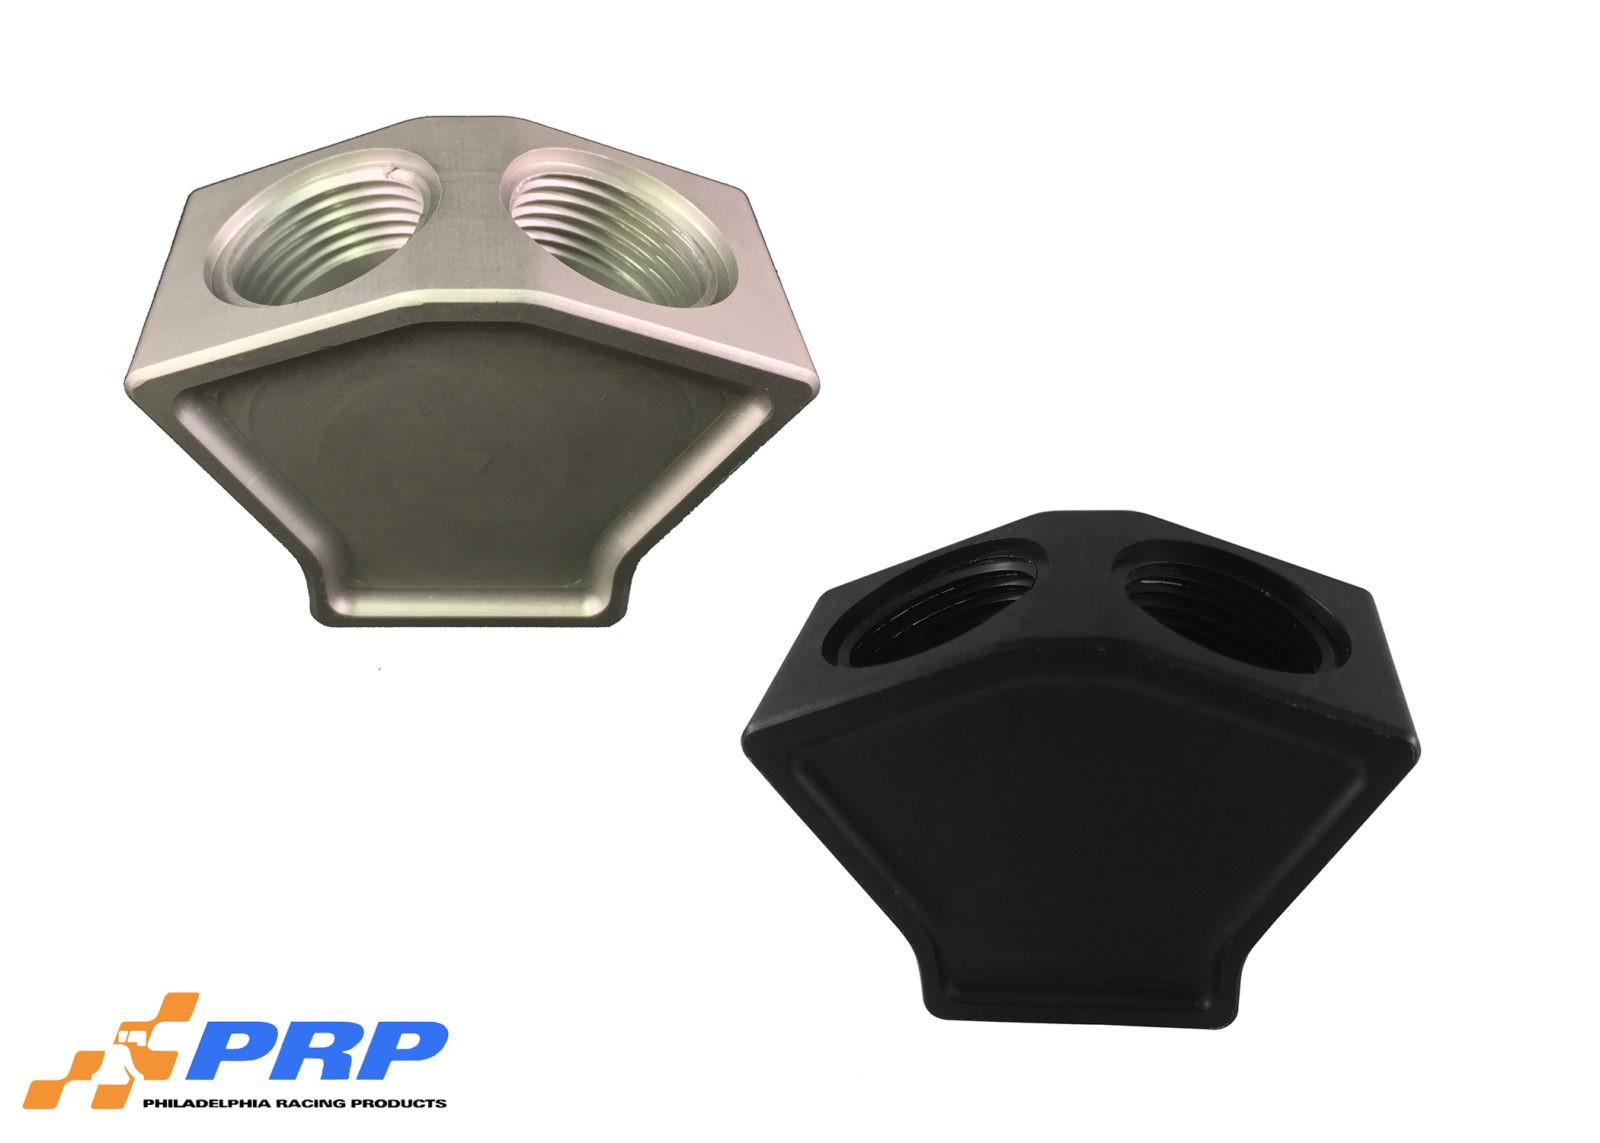 Clear and Black 2 to 1 Y-Block made by PRP Racing Products